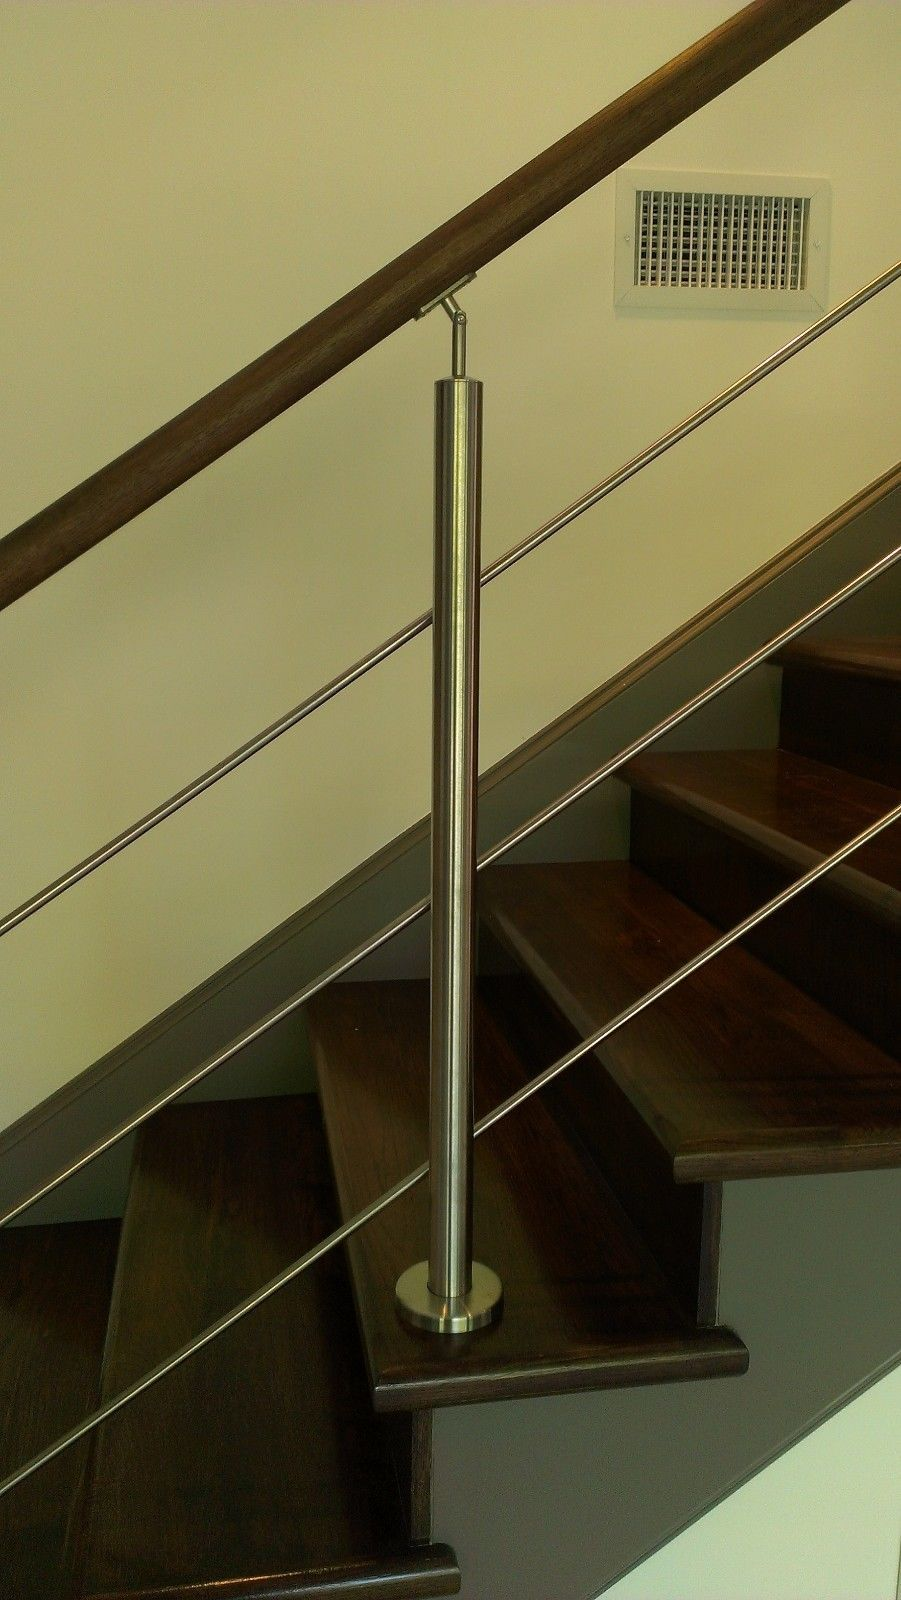 Stainless Steel Stair Parts Modern Gl Rods Cable Railing